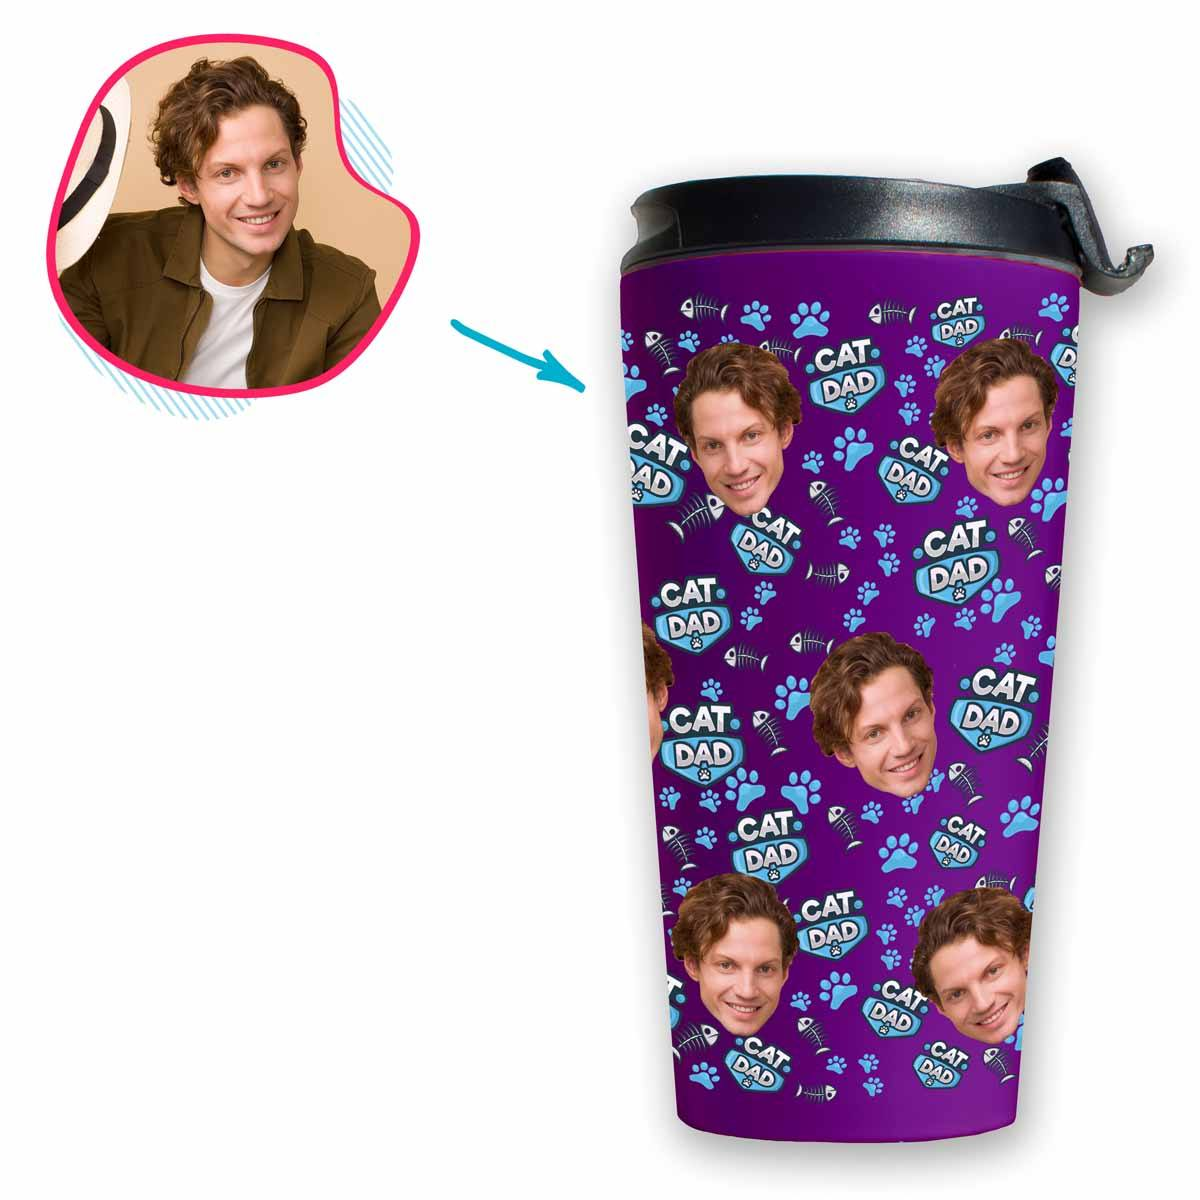 purple Cat Dad travel mug personalized with photo of face printed on it